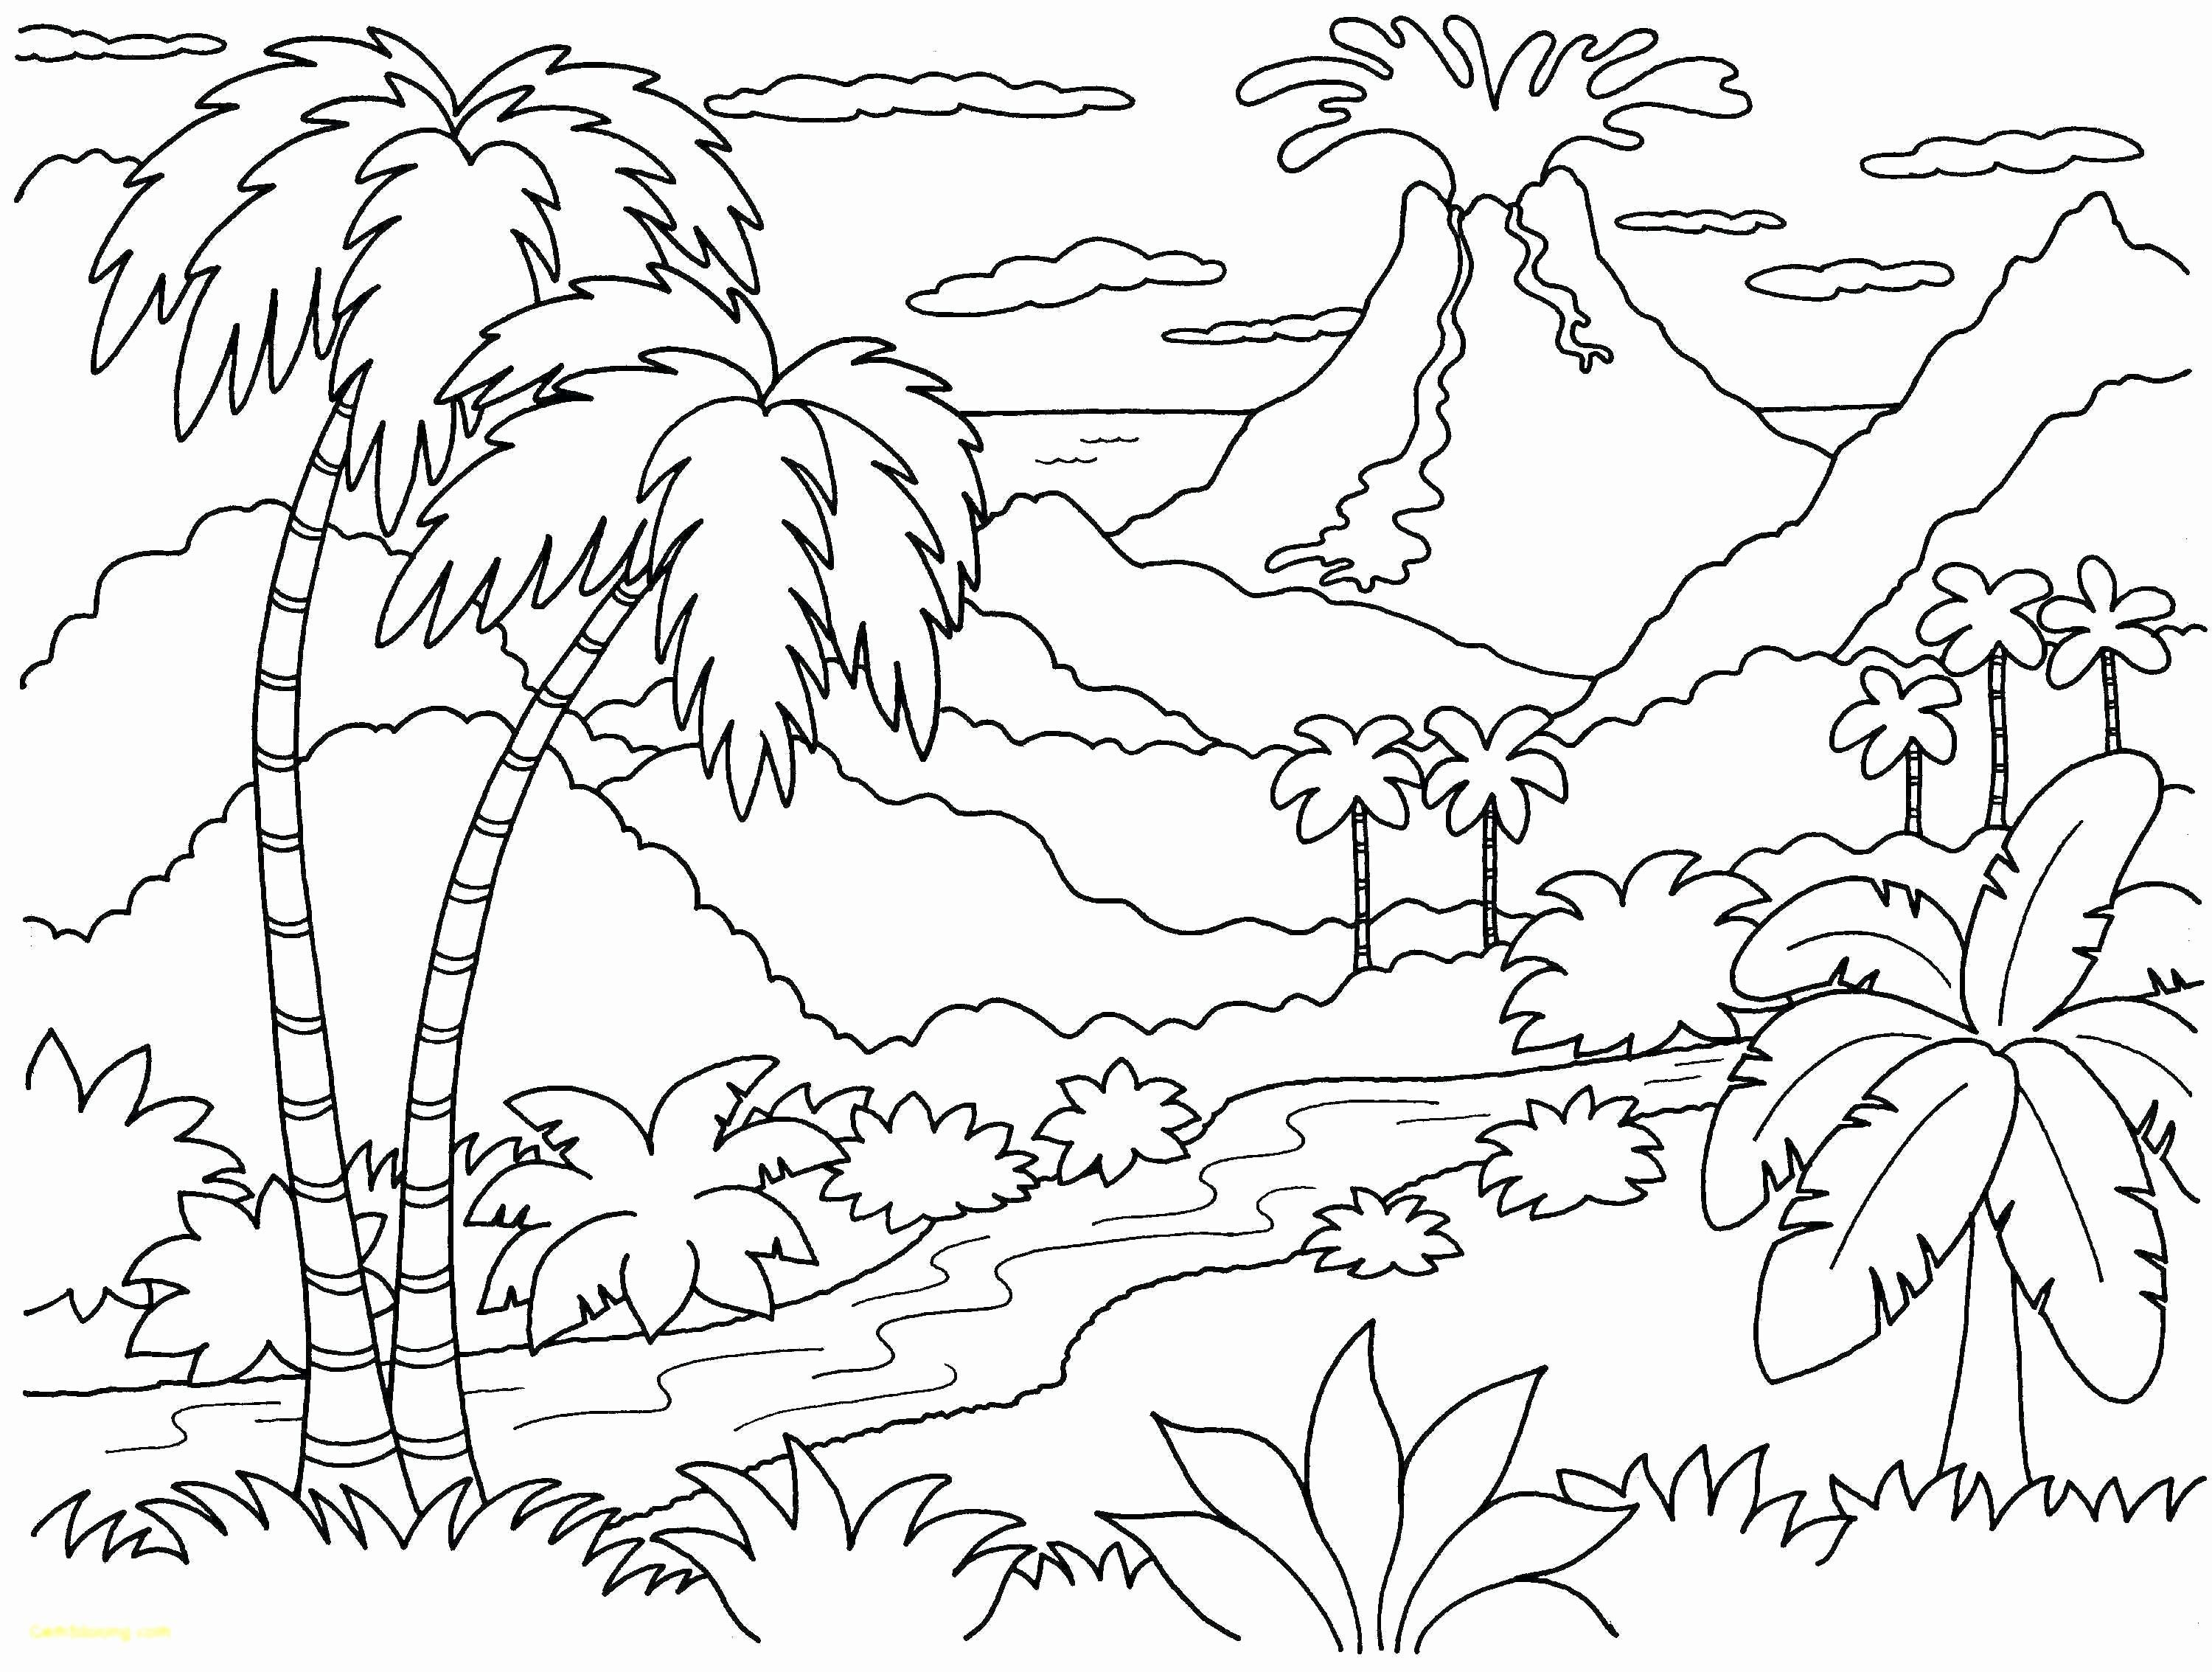 Tree Coloring Pages To Print Luxury Palm Tree Coloring Sheets Reddogsheet Beach Coloring Pages Coloring Pages Nature Mandala Coloring Pages